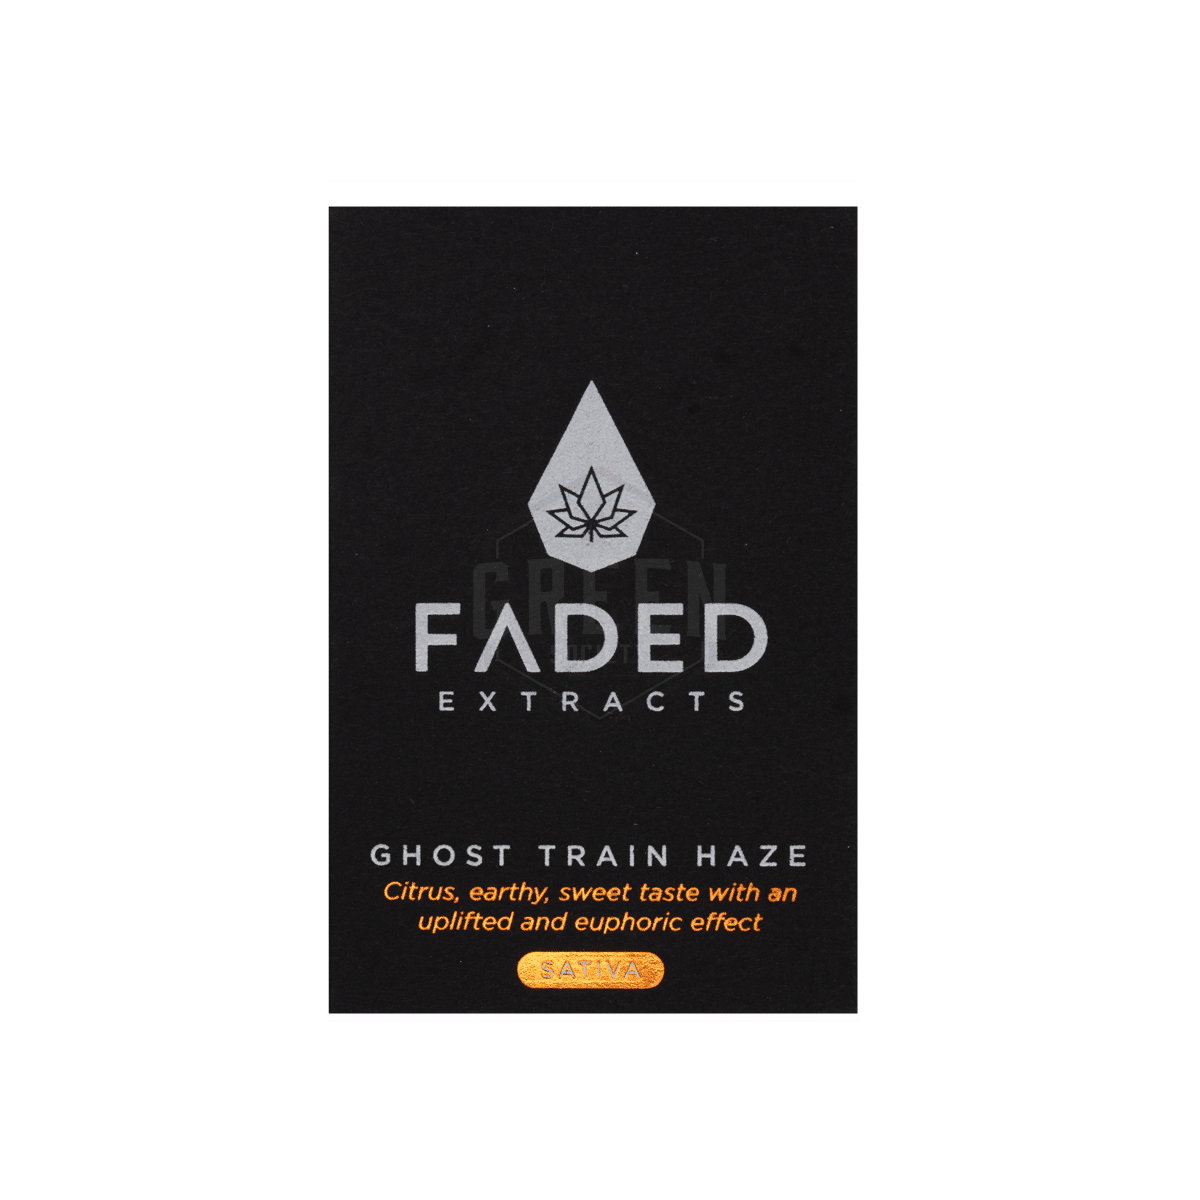 Ghost Train Haze Shatter by Faded Extracts by Green Society - Image © 2018 Green Society. All Rights Reserved.